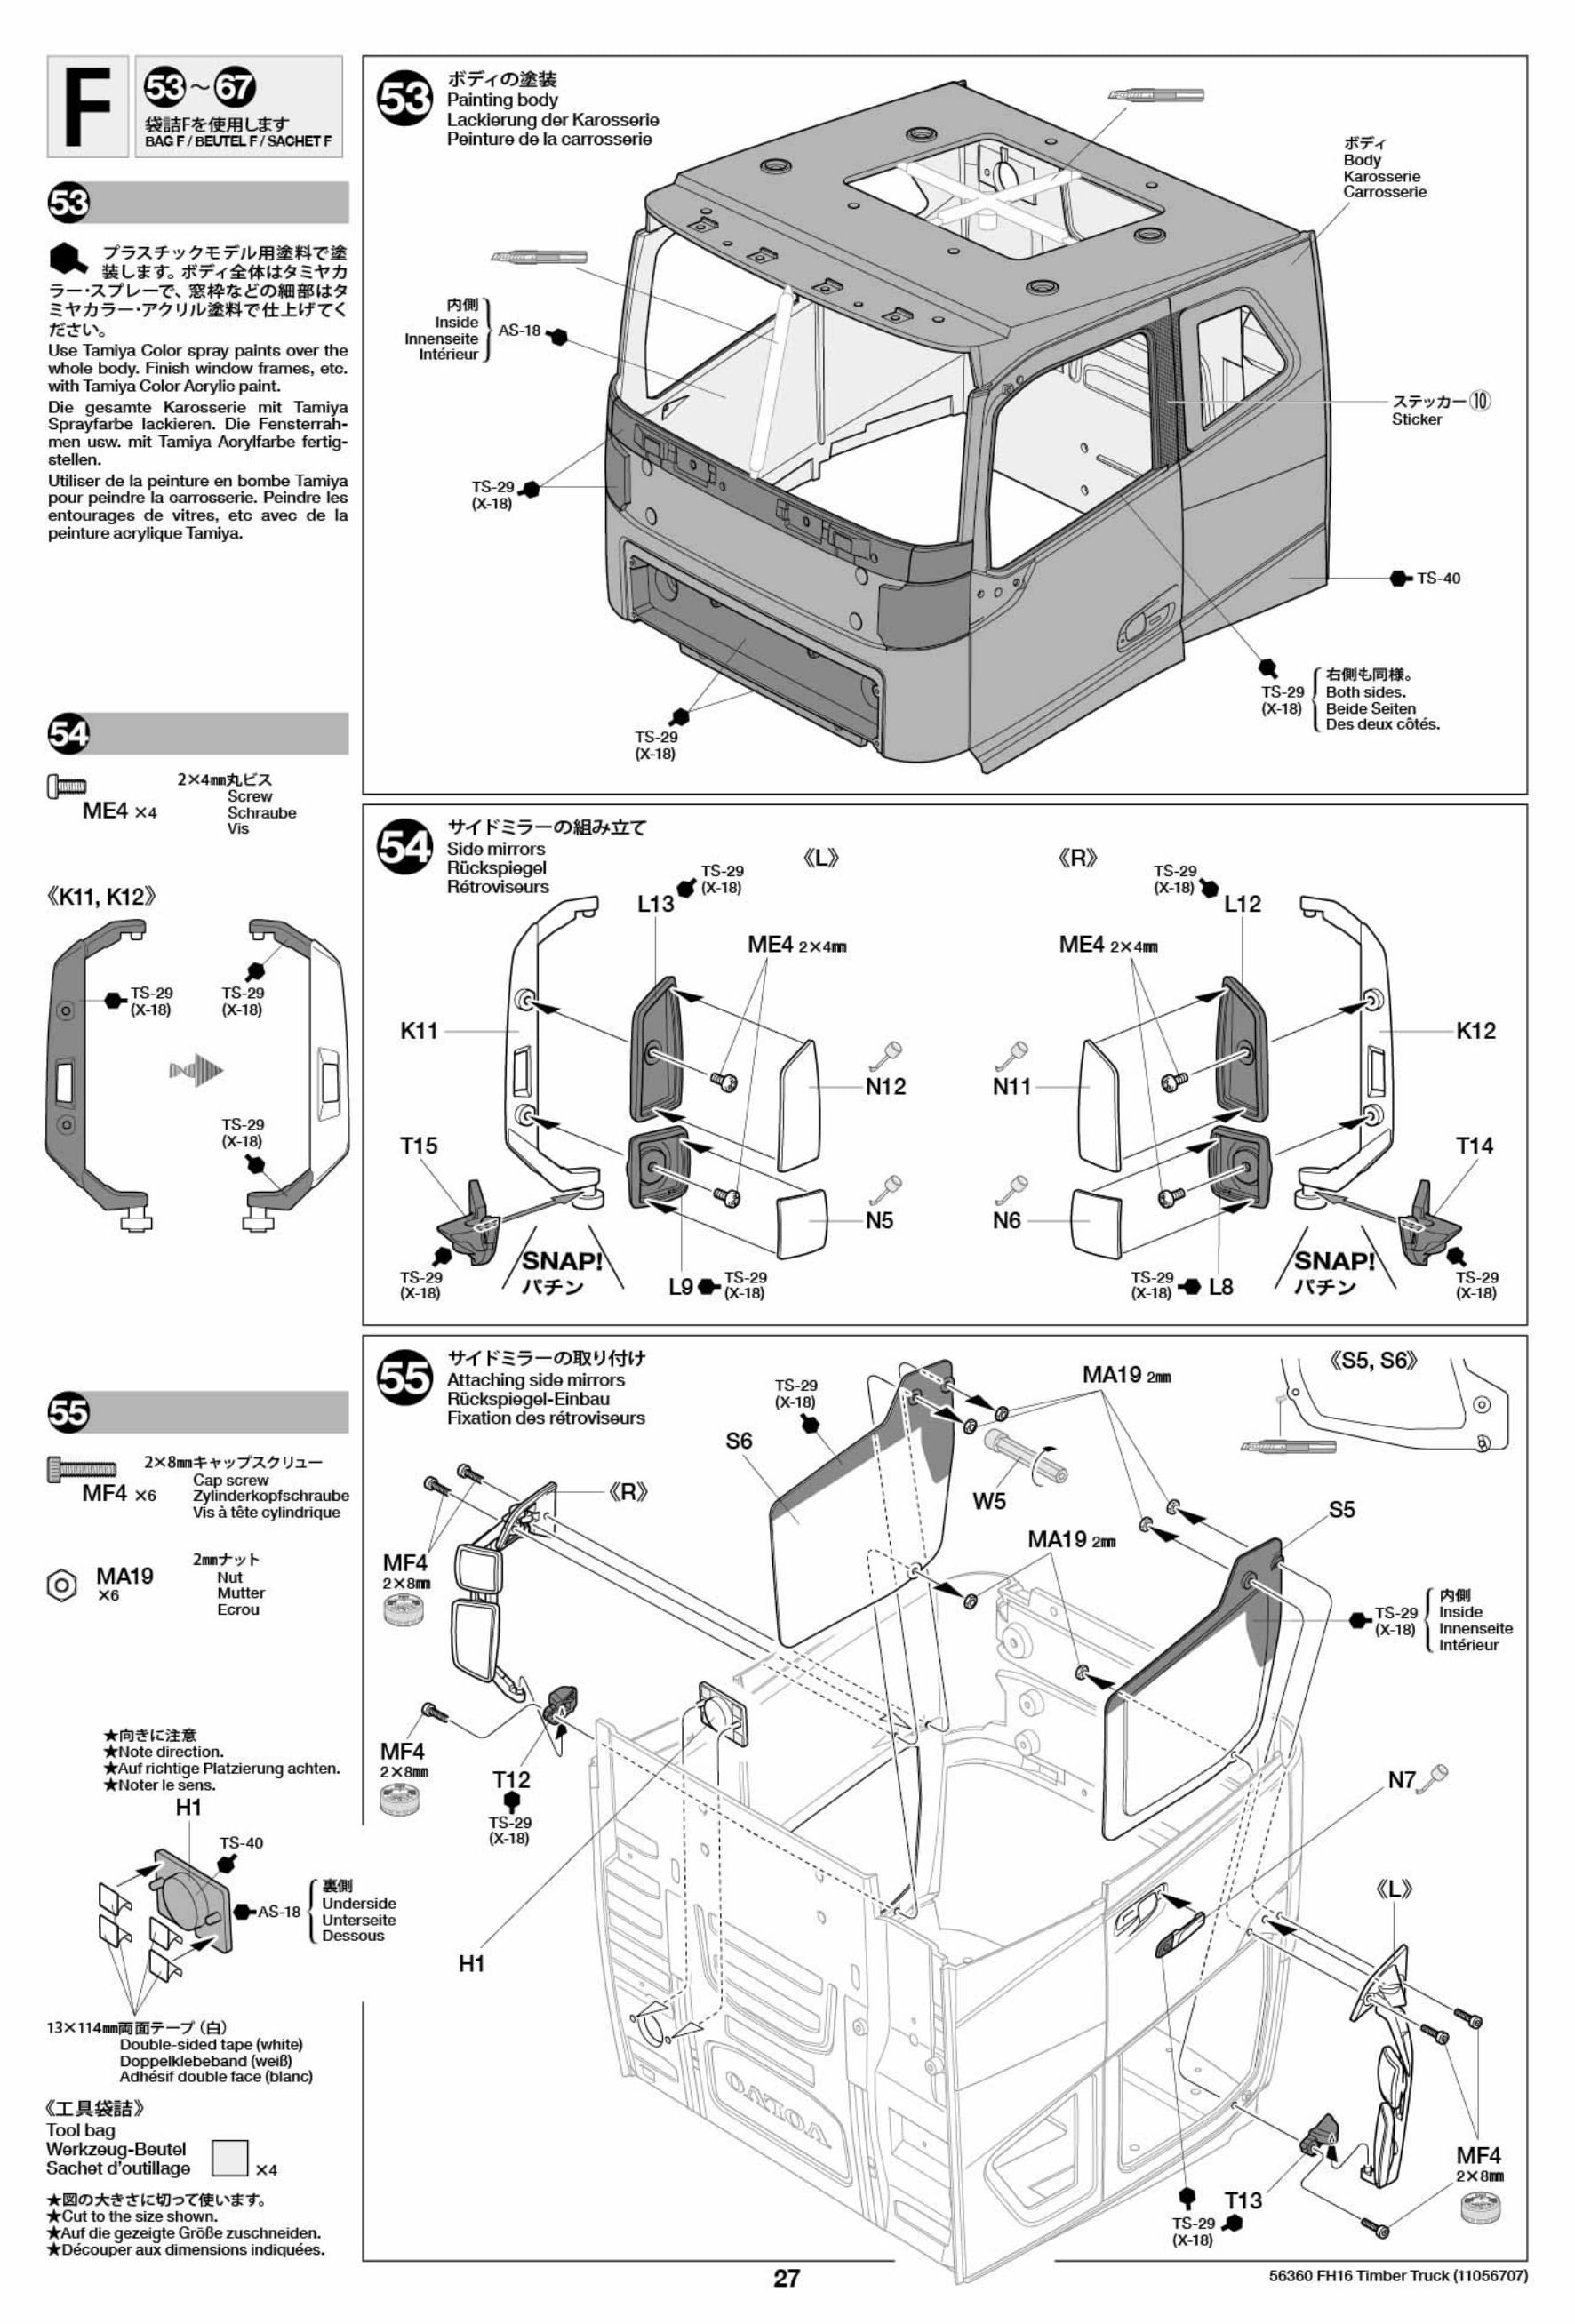 1991 Gsxr 750 Wiring Diagram As Well Forest River Rv Wiring Diagrams